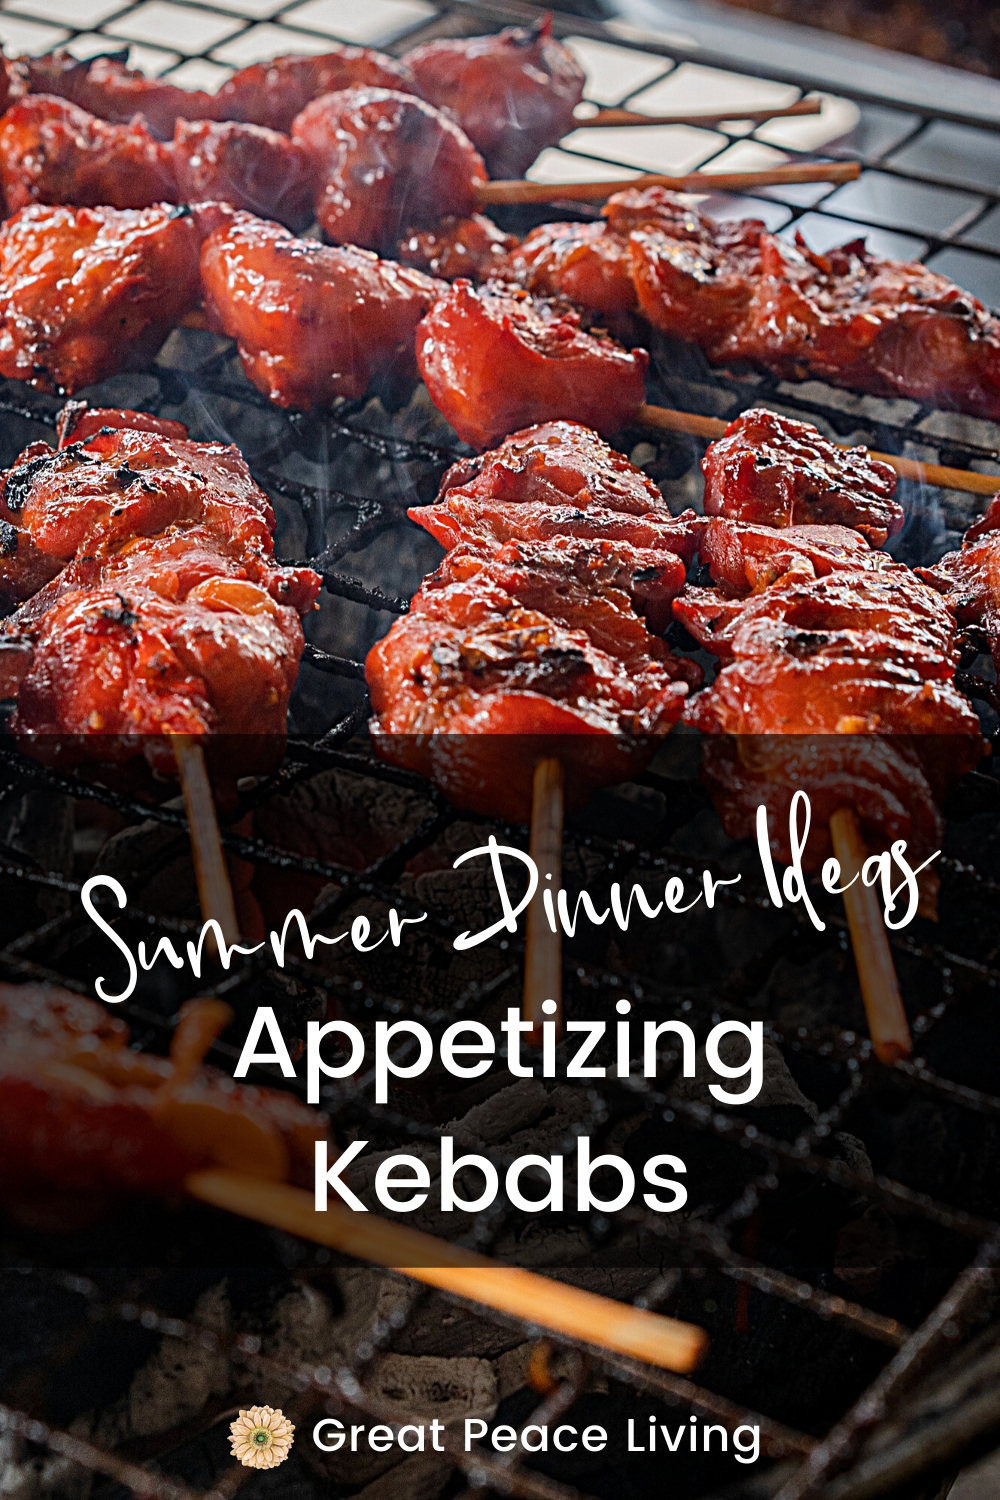 Tasty Recipes for Kebabs, a Perfect Summer Dinner Idea